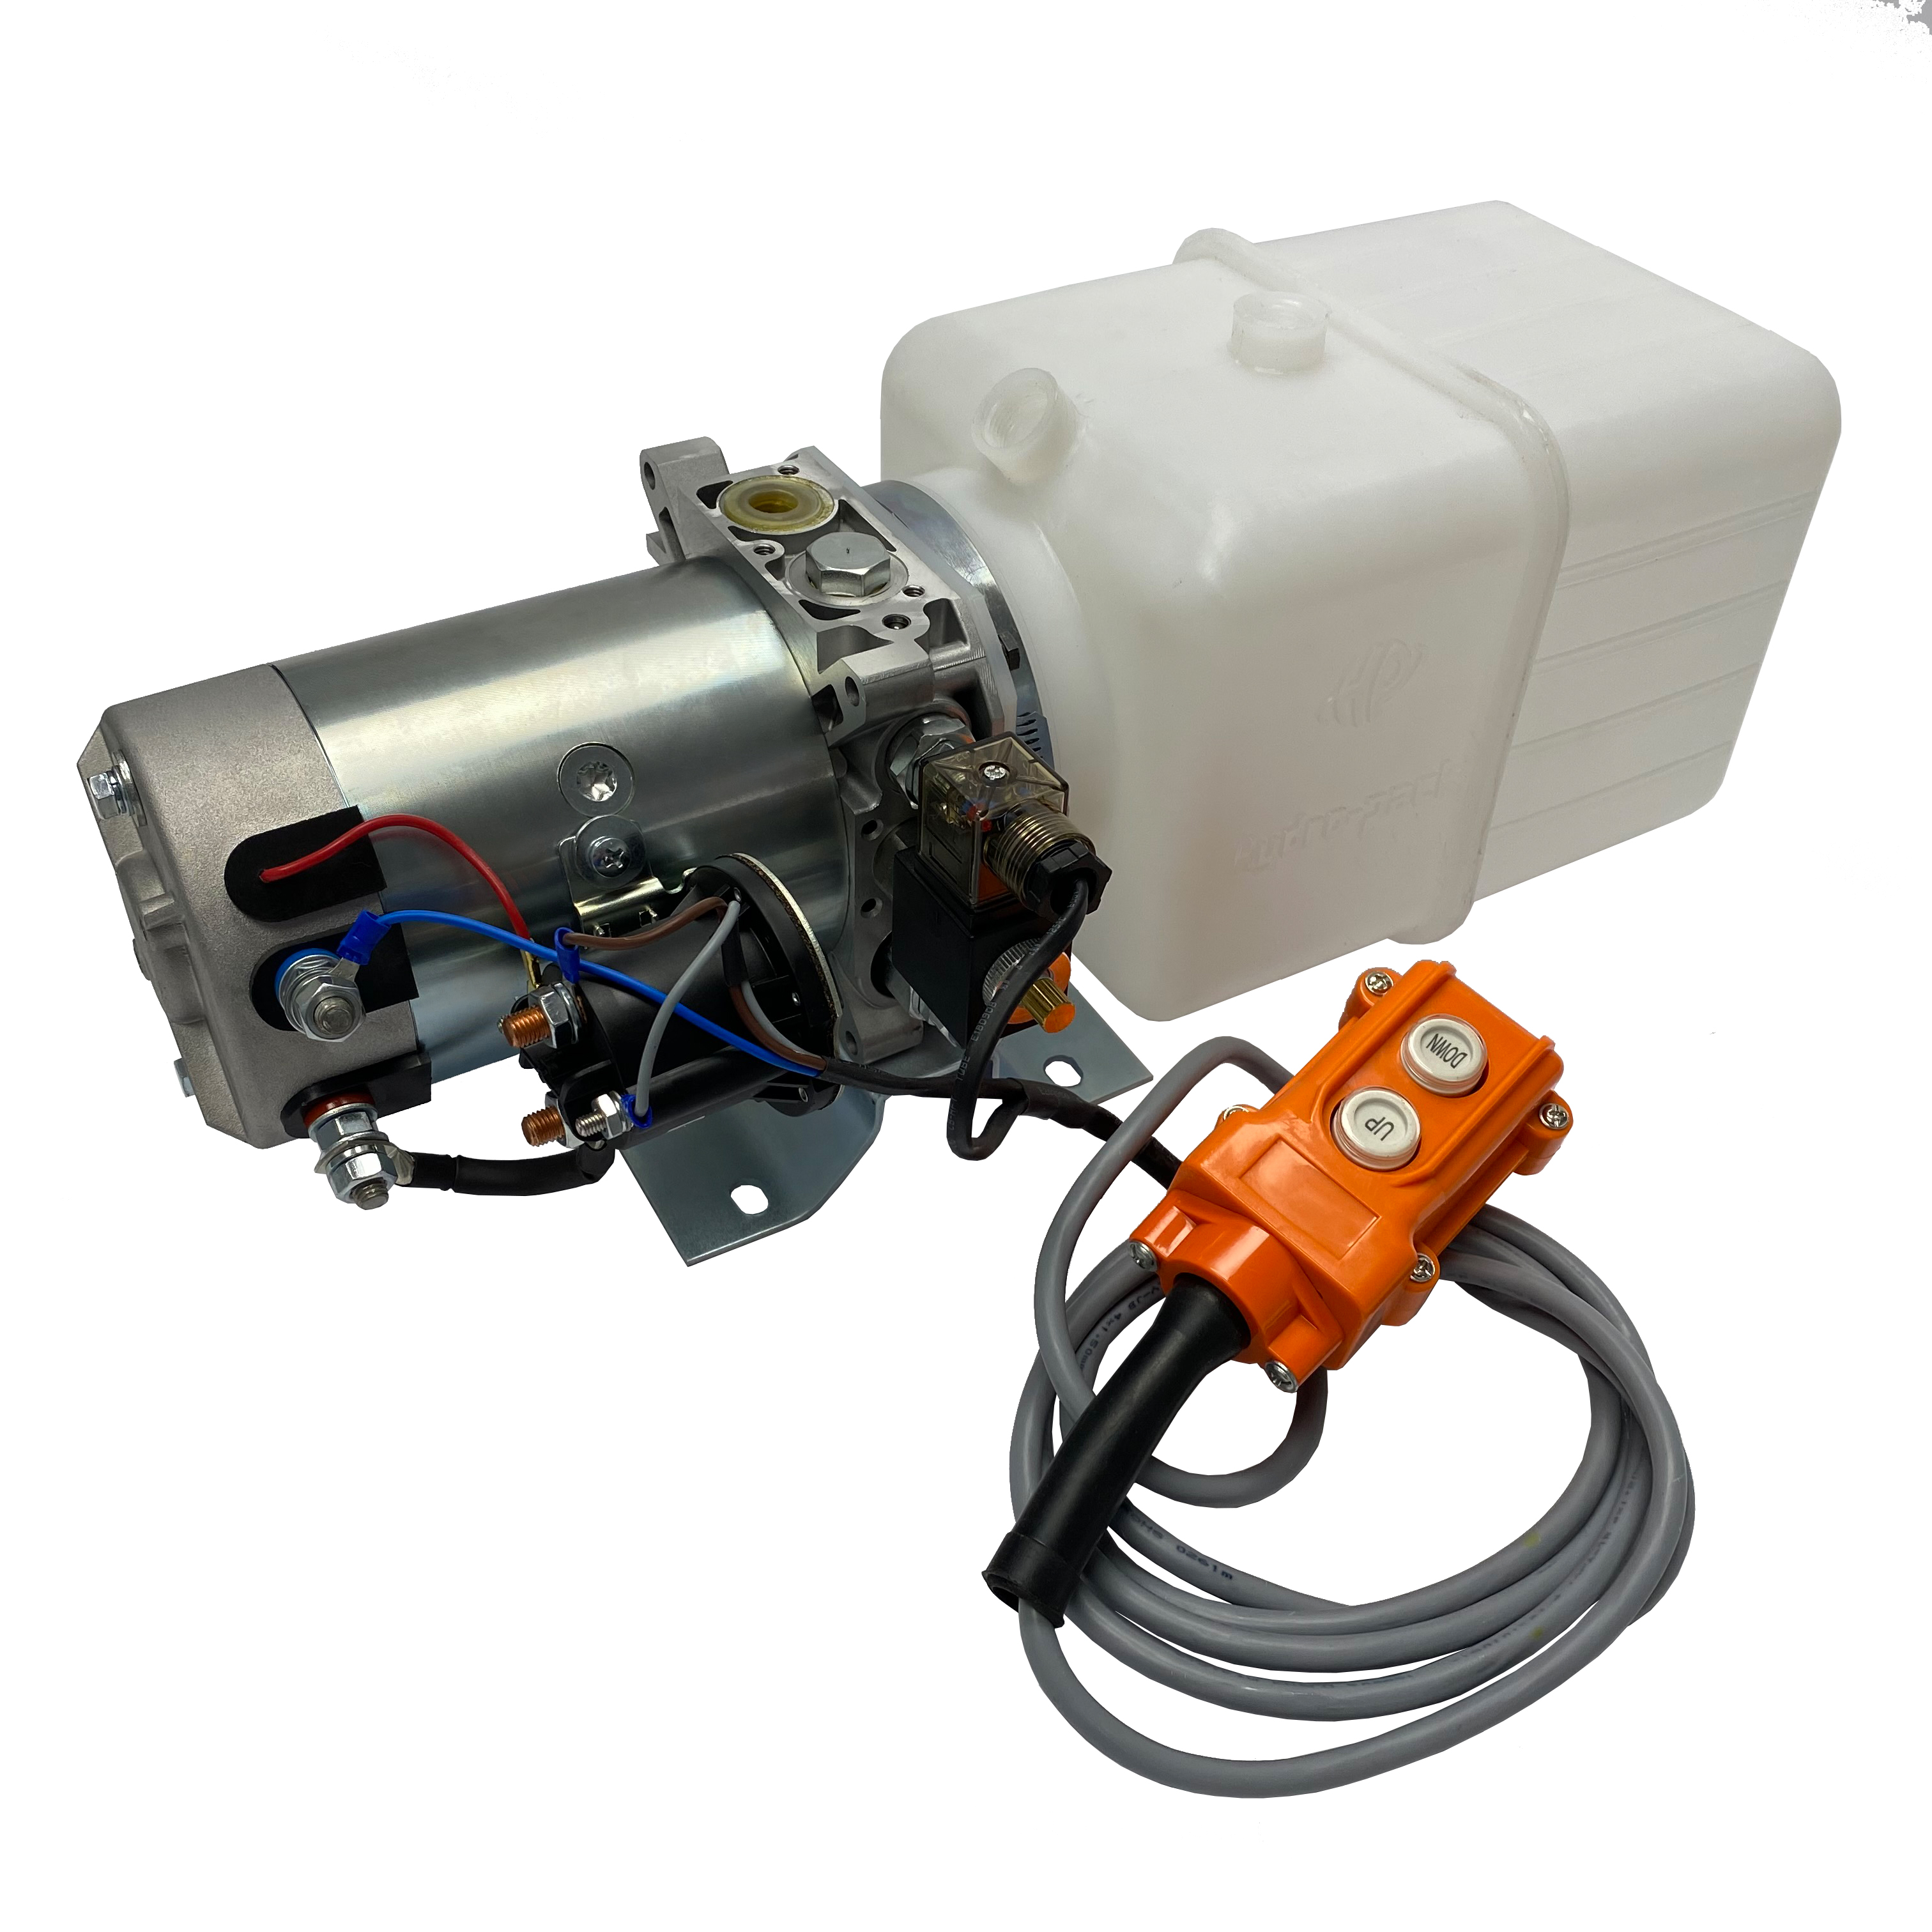 single acting 8 quarts plastic reservoir hydraulic power unit 12V DC by Hydro-Pack | Magister Hydraulics